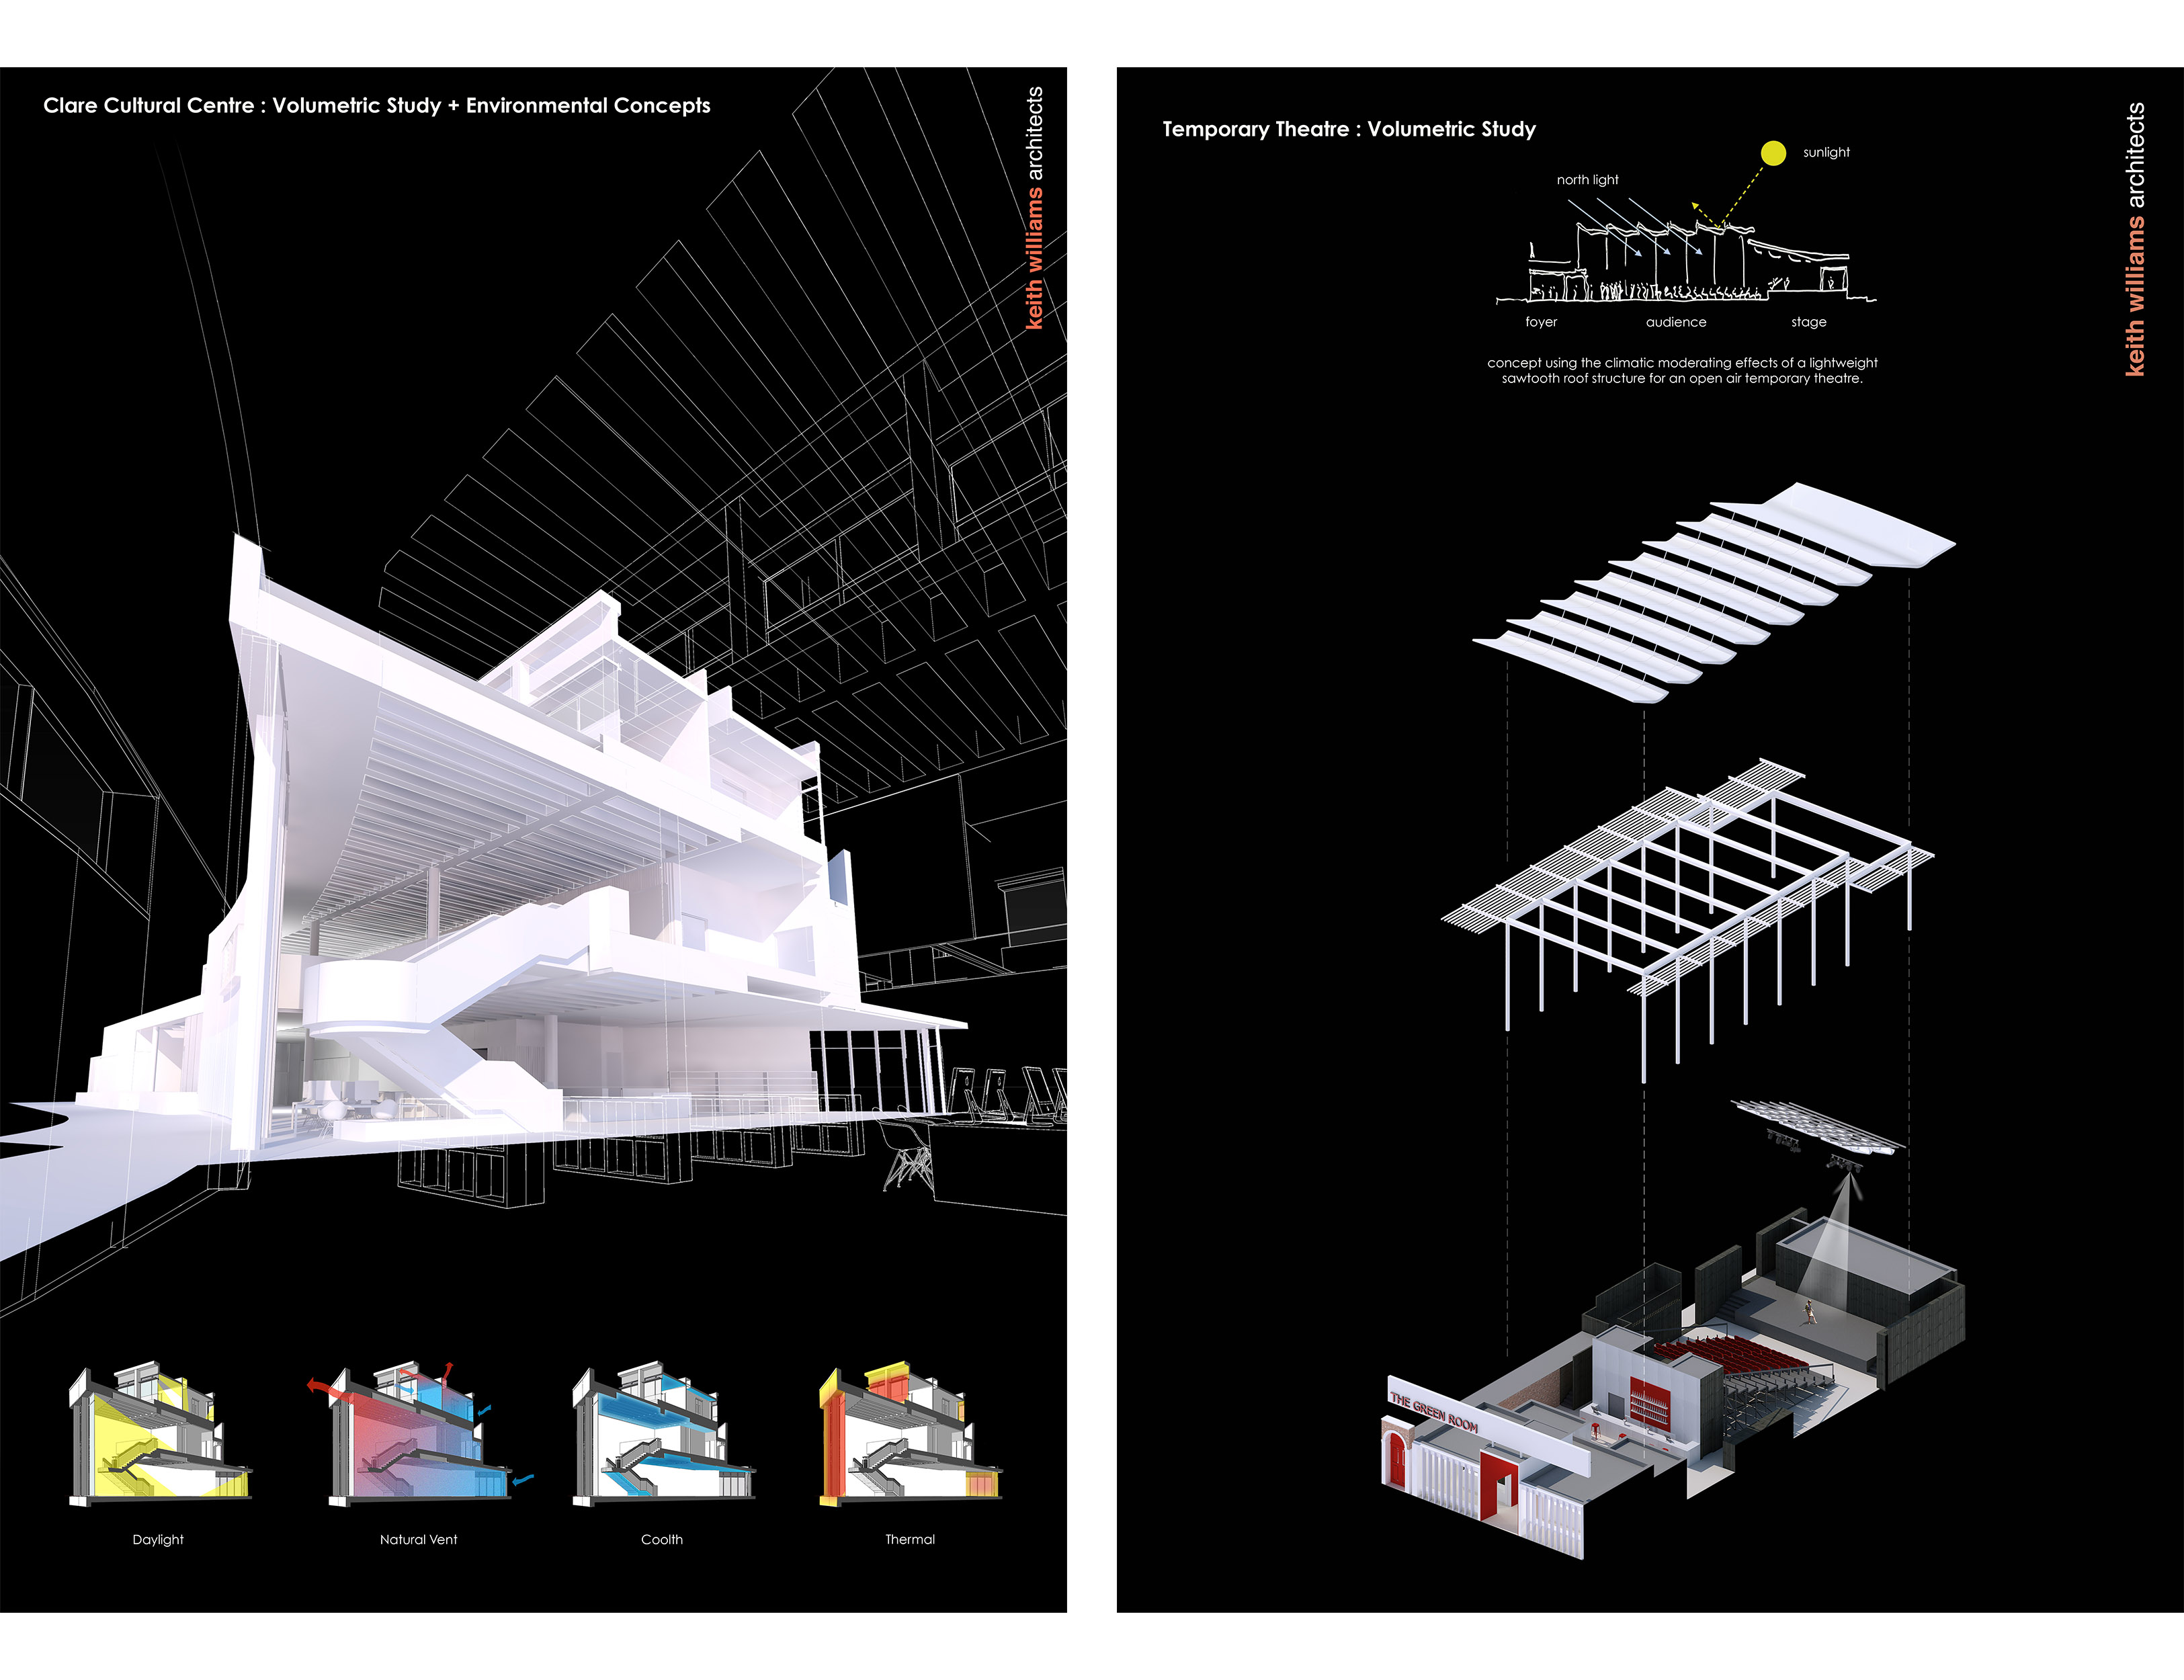 """2 drawings at the RA 2019 """"clare cultural centre : volumetric study + environmental concepts"""" and a """"temporary theatre : volumetric study"""" by Keith WIlliams Architects."""